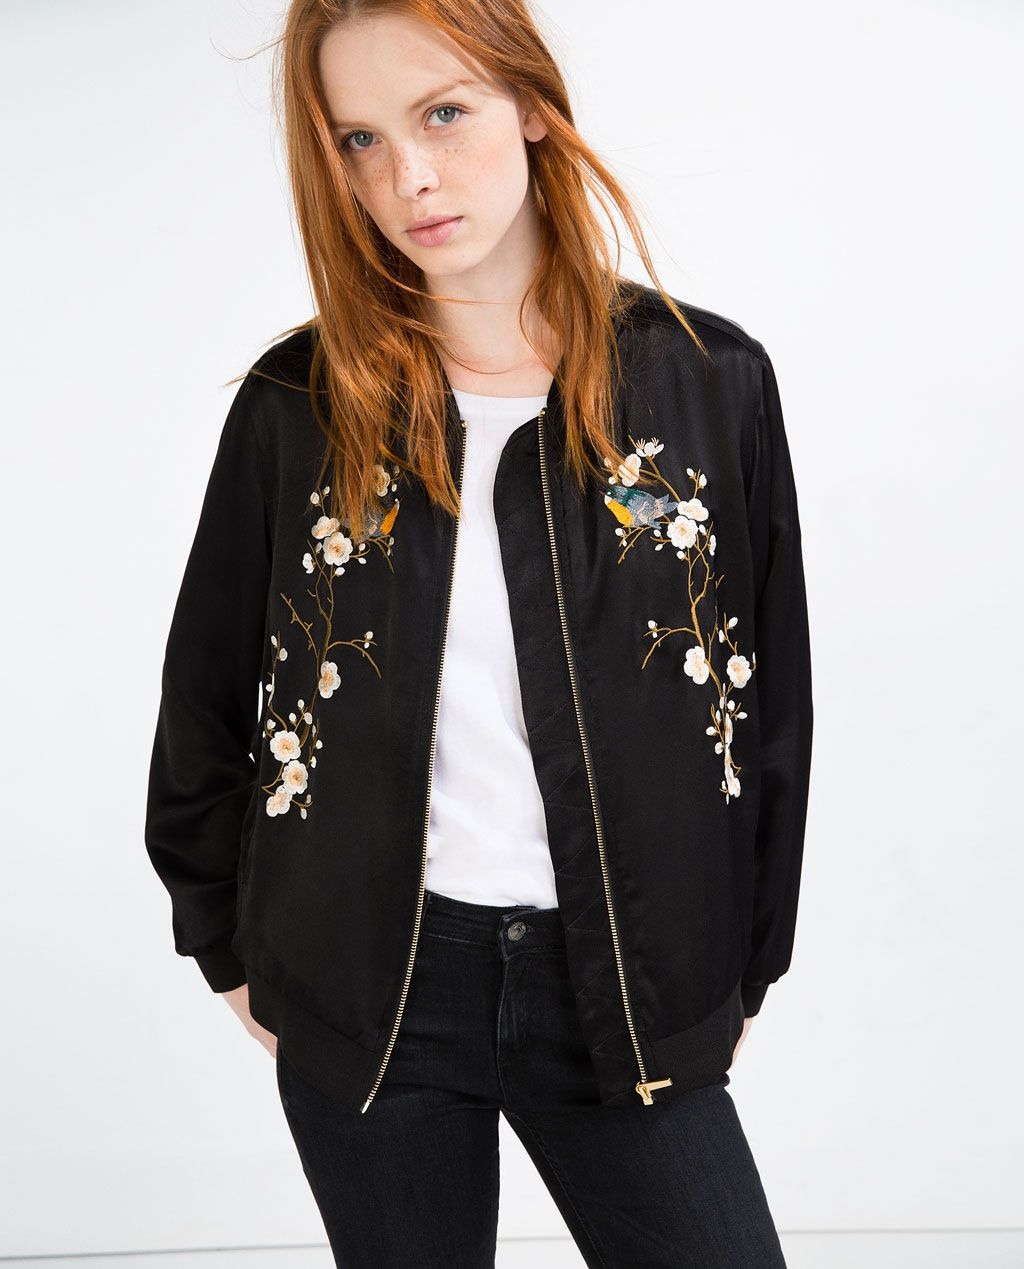 blouson bomber brod fleurs jinggut jackets pinterest bombee blouson et broder. Black Bedroom Furniture Sets. Home Design Ideas